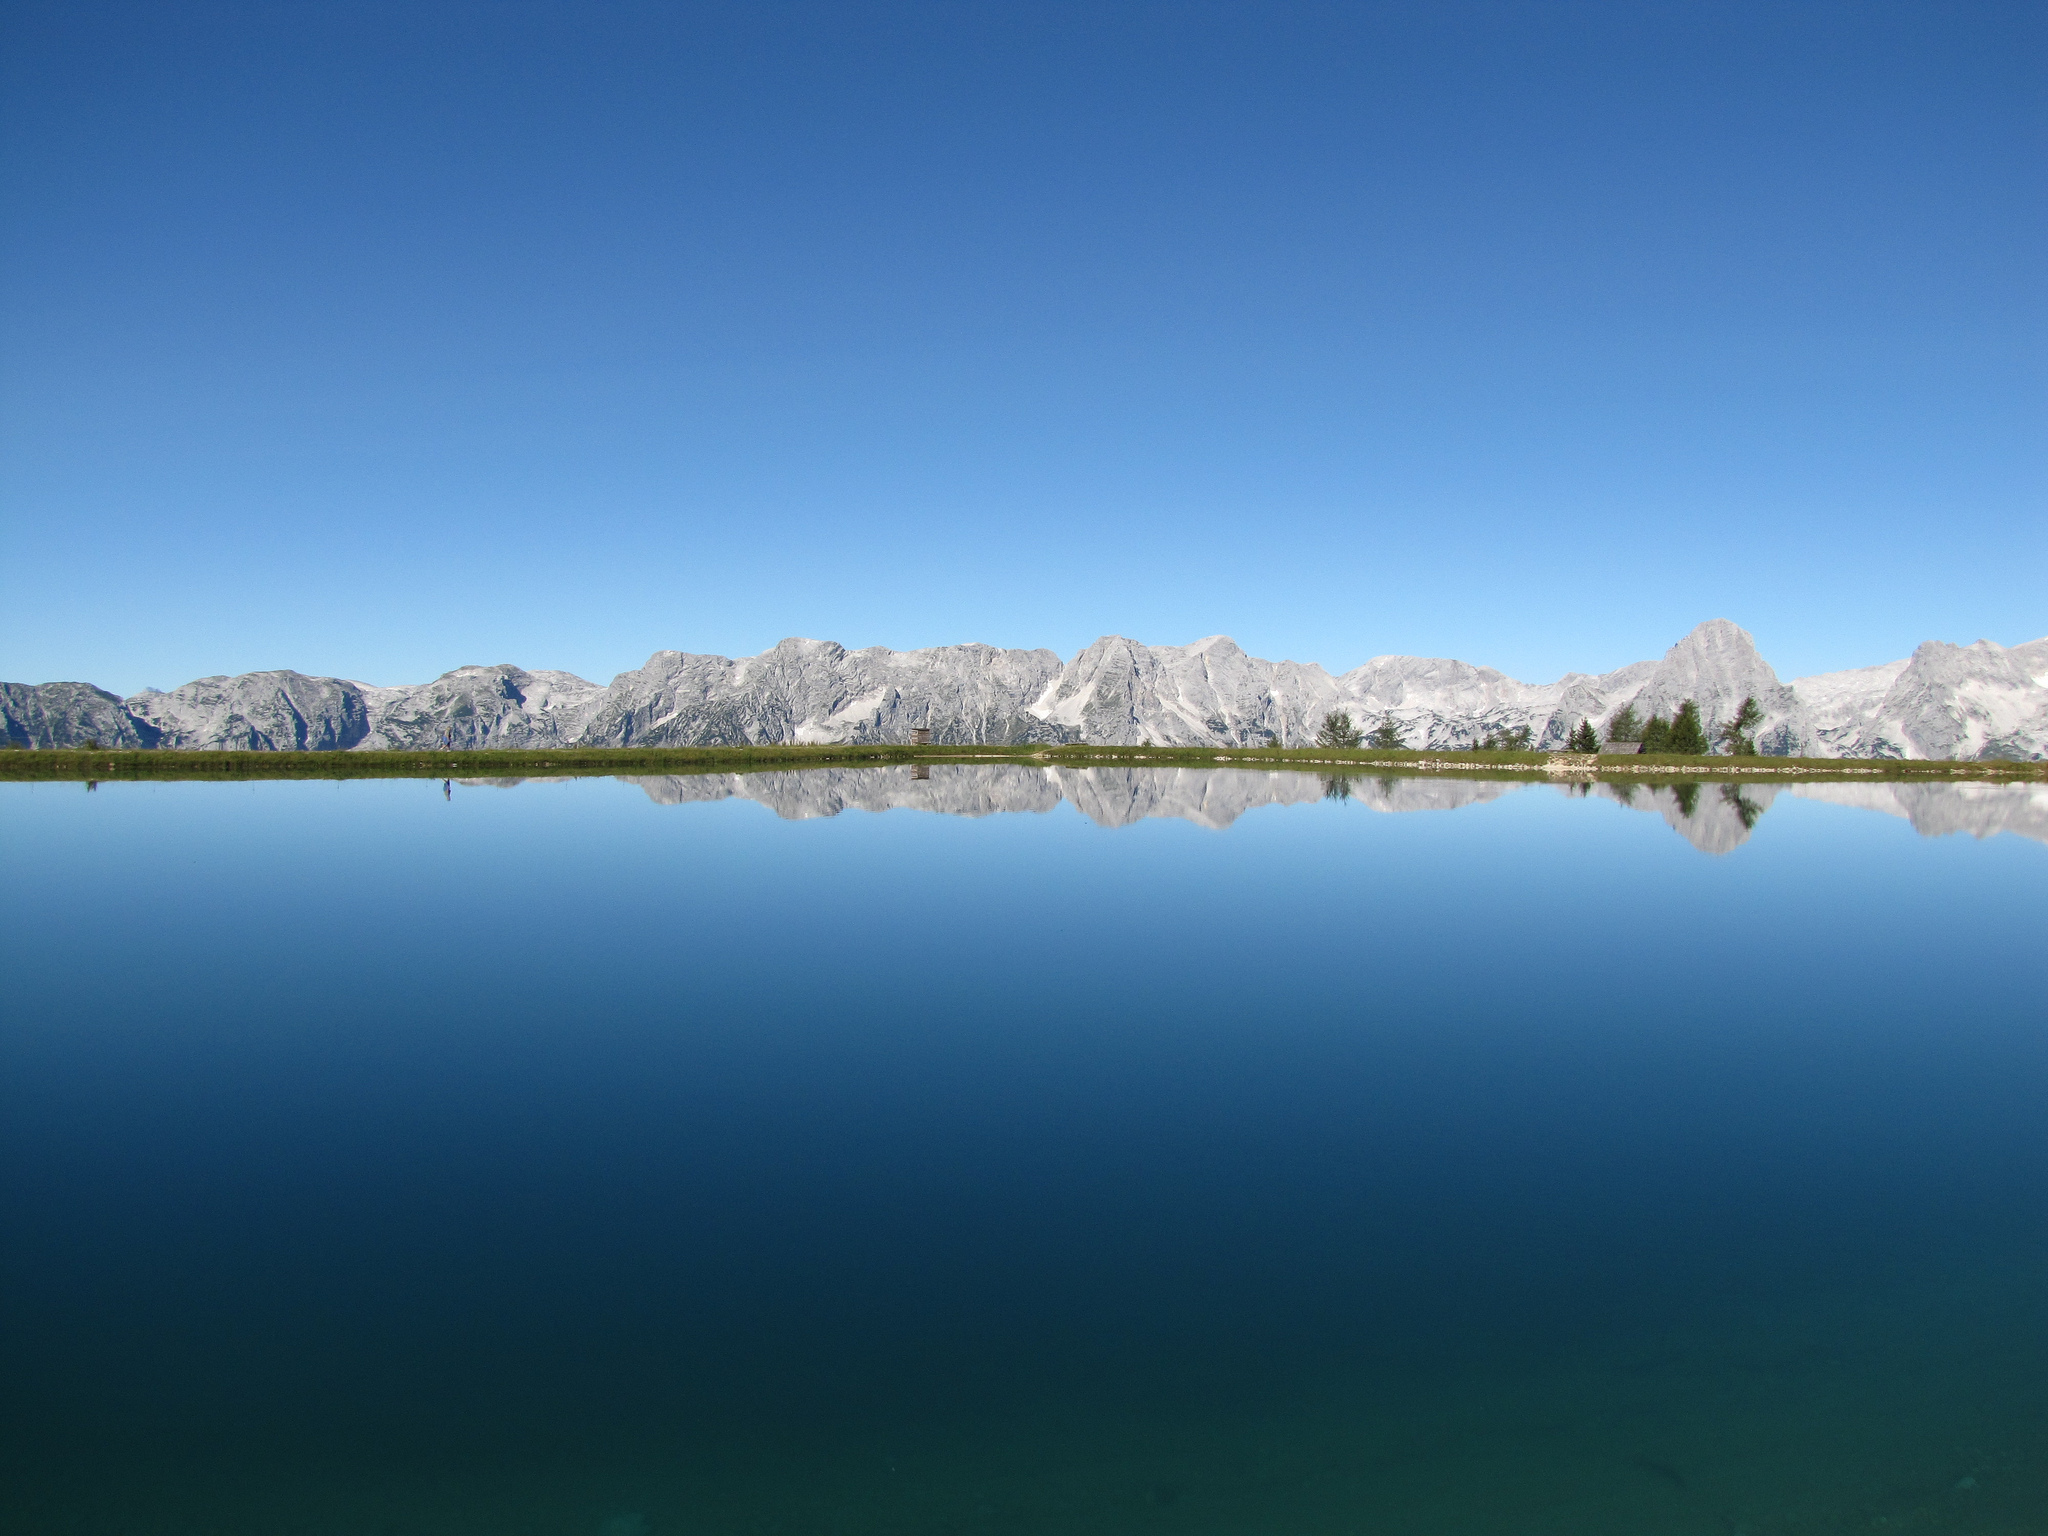 Speichersee Hösskogel - Peter Krimbacher via Flickr